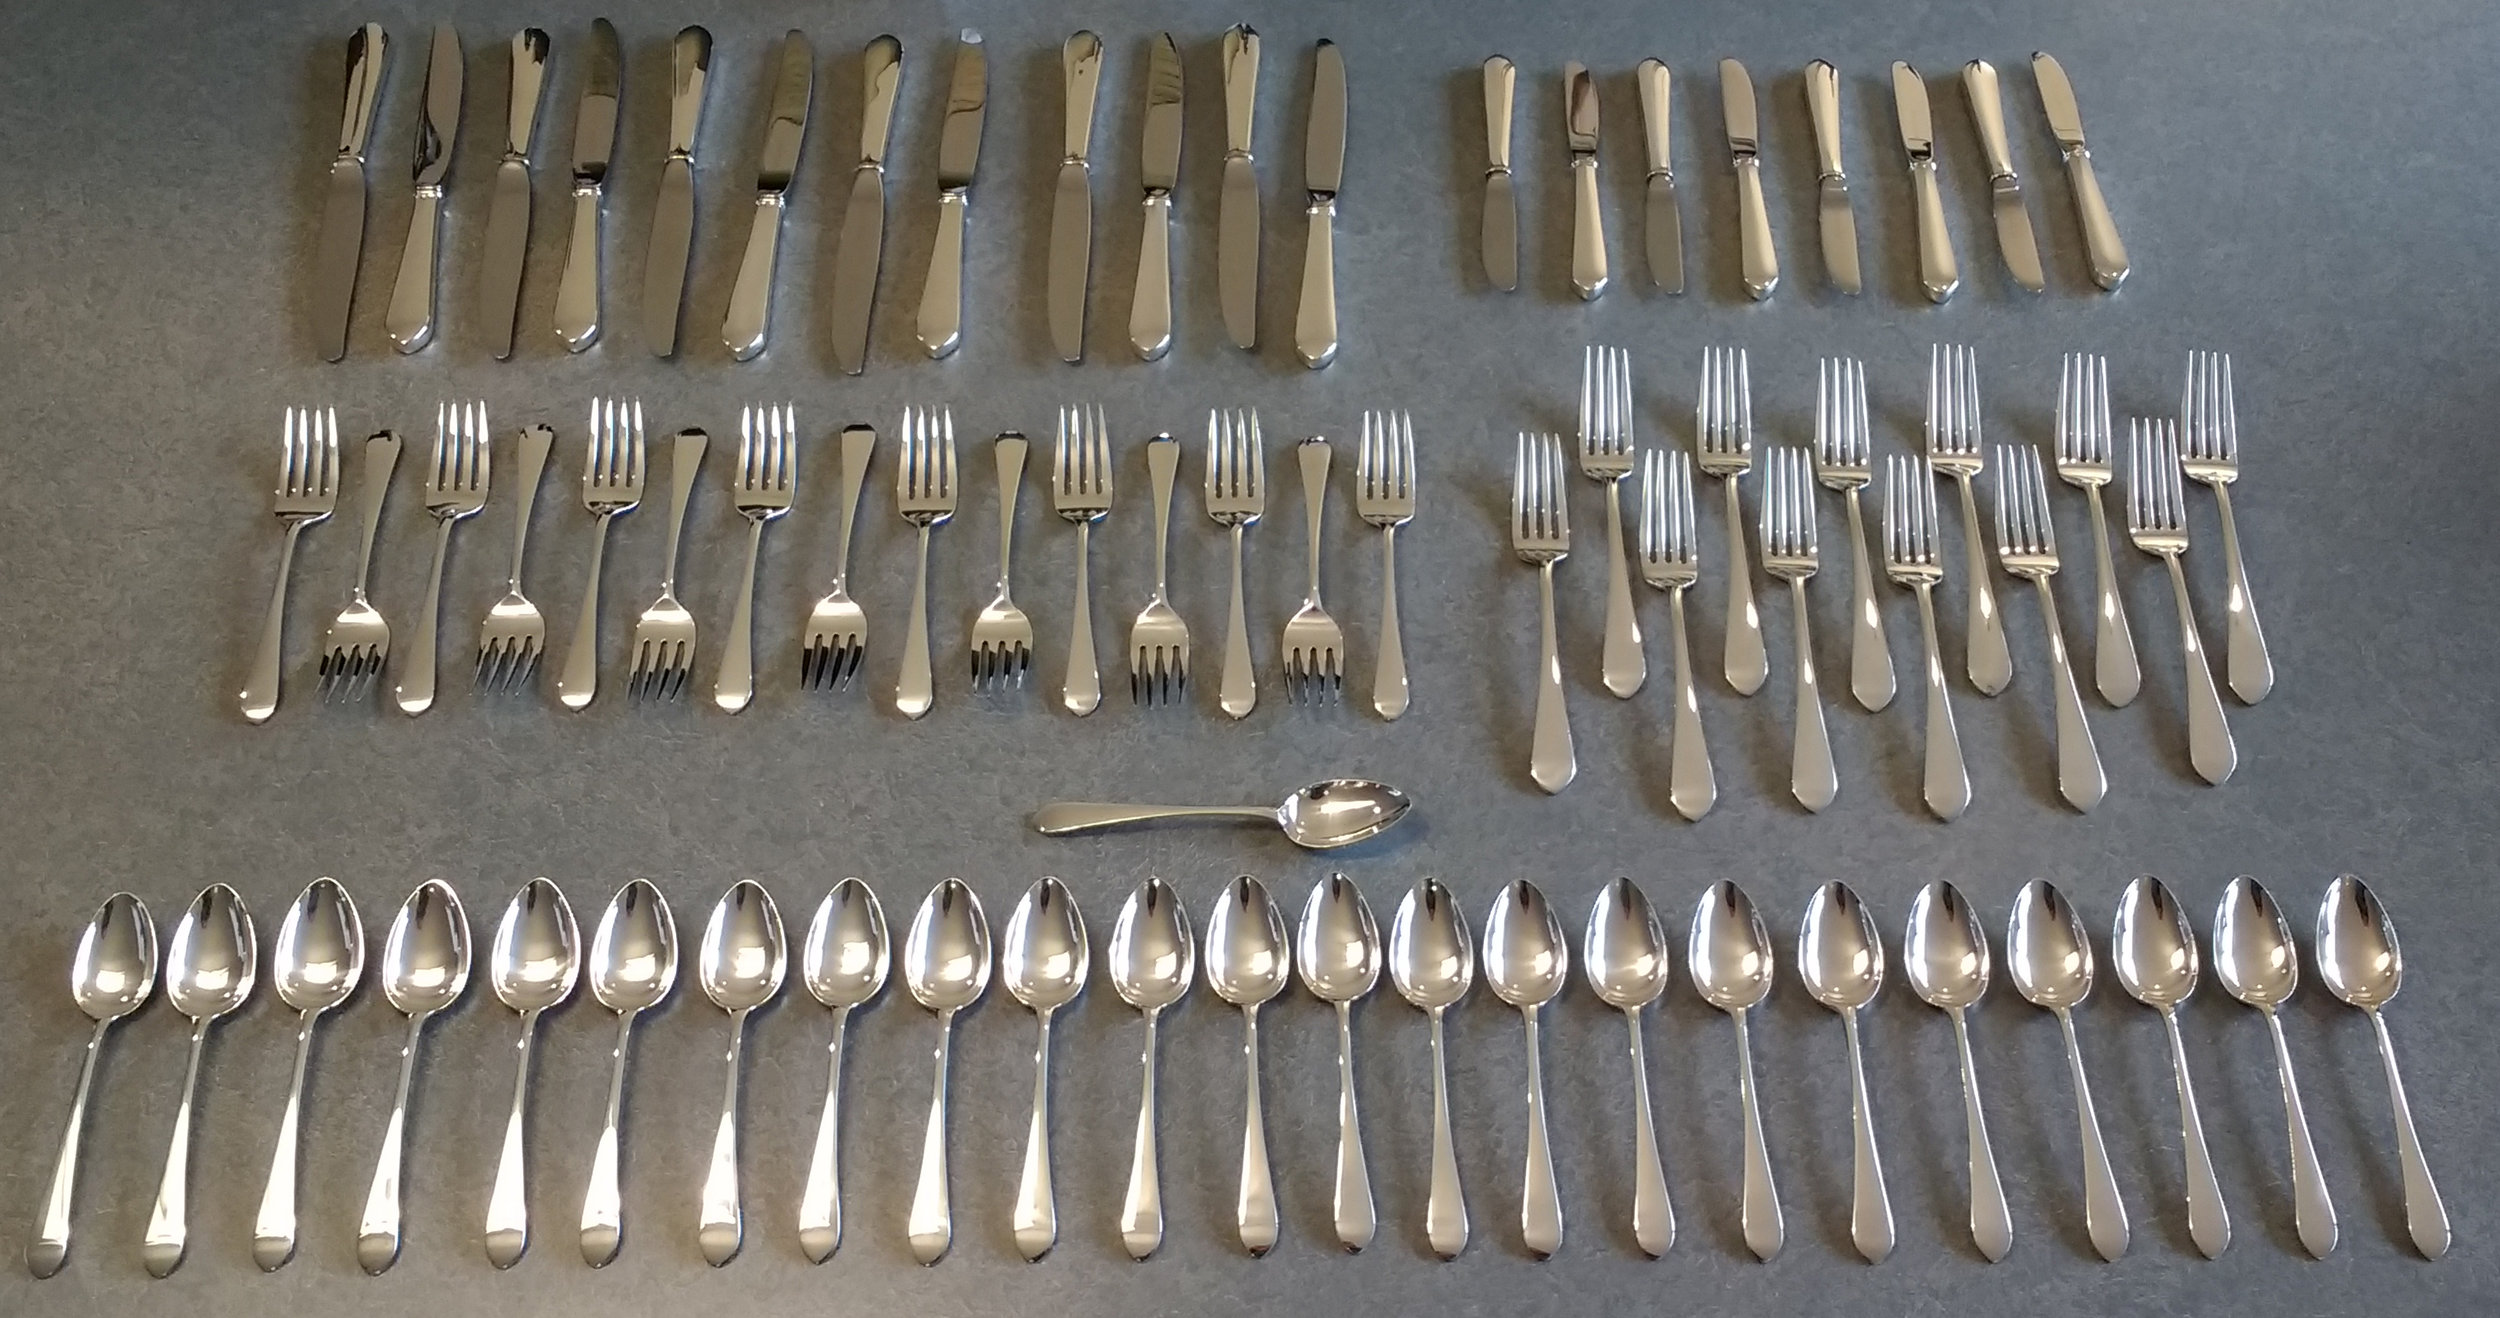 Sterling Silver forks, knives and spoons professionally polished to restore their appearance.